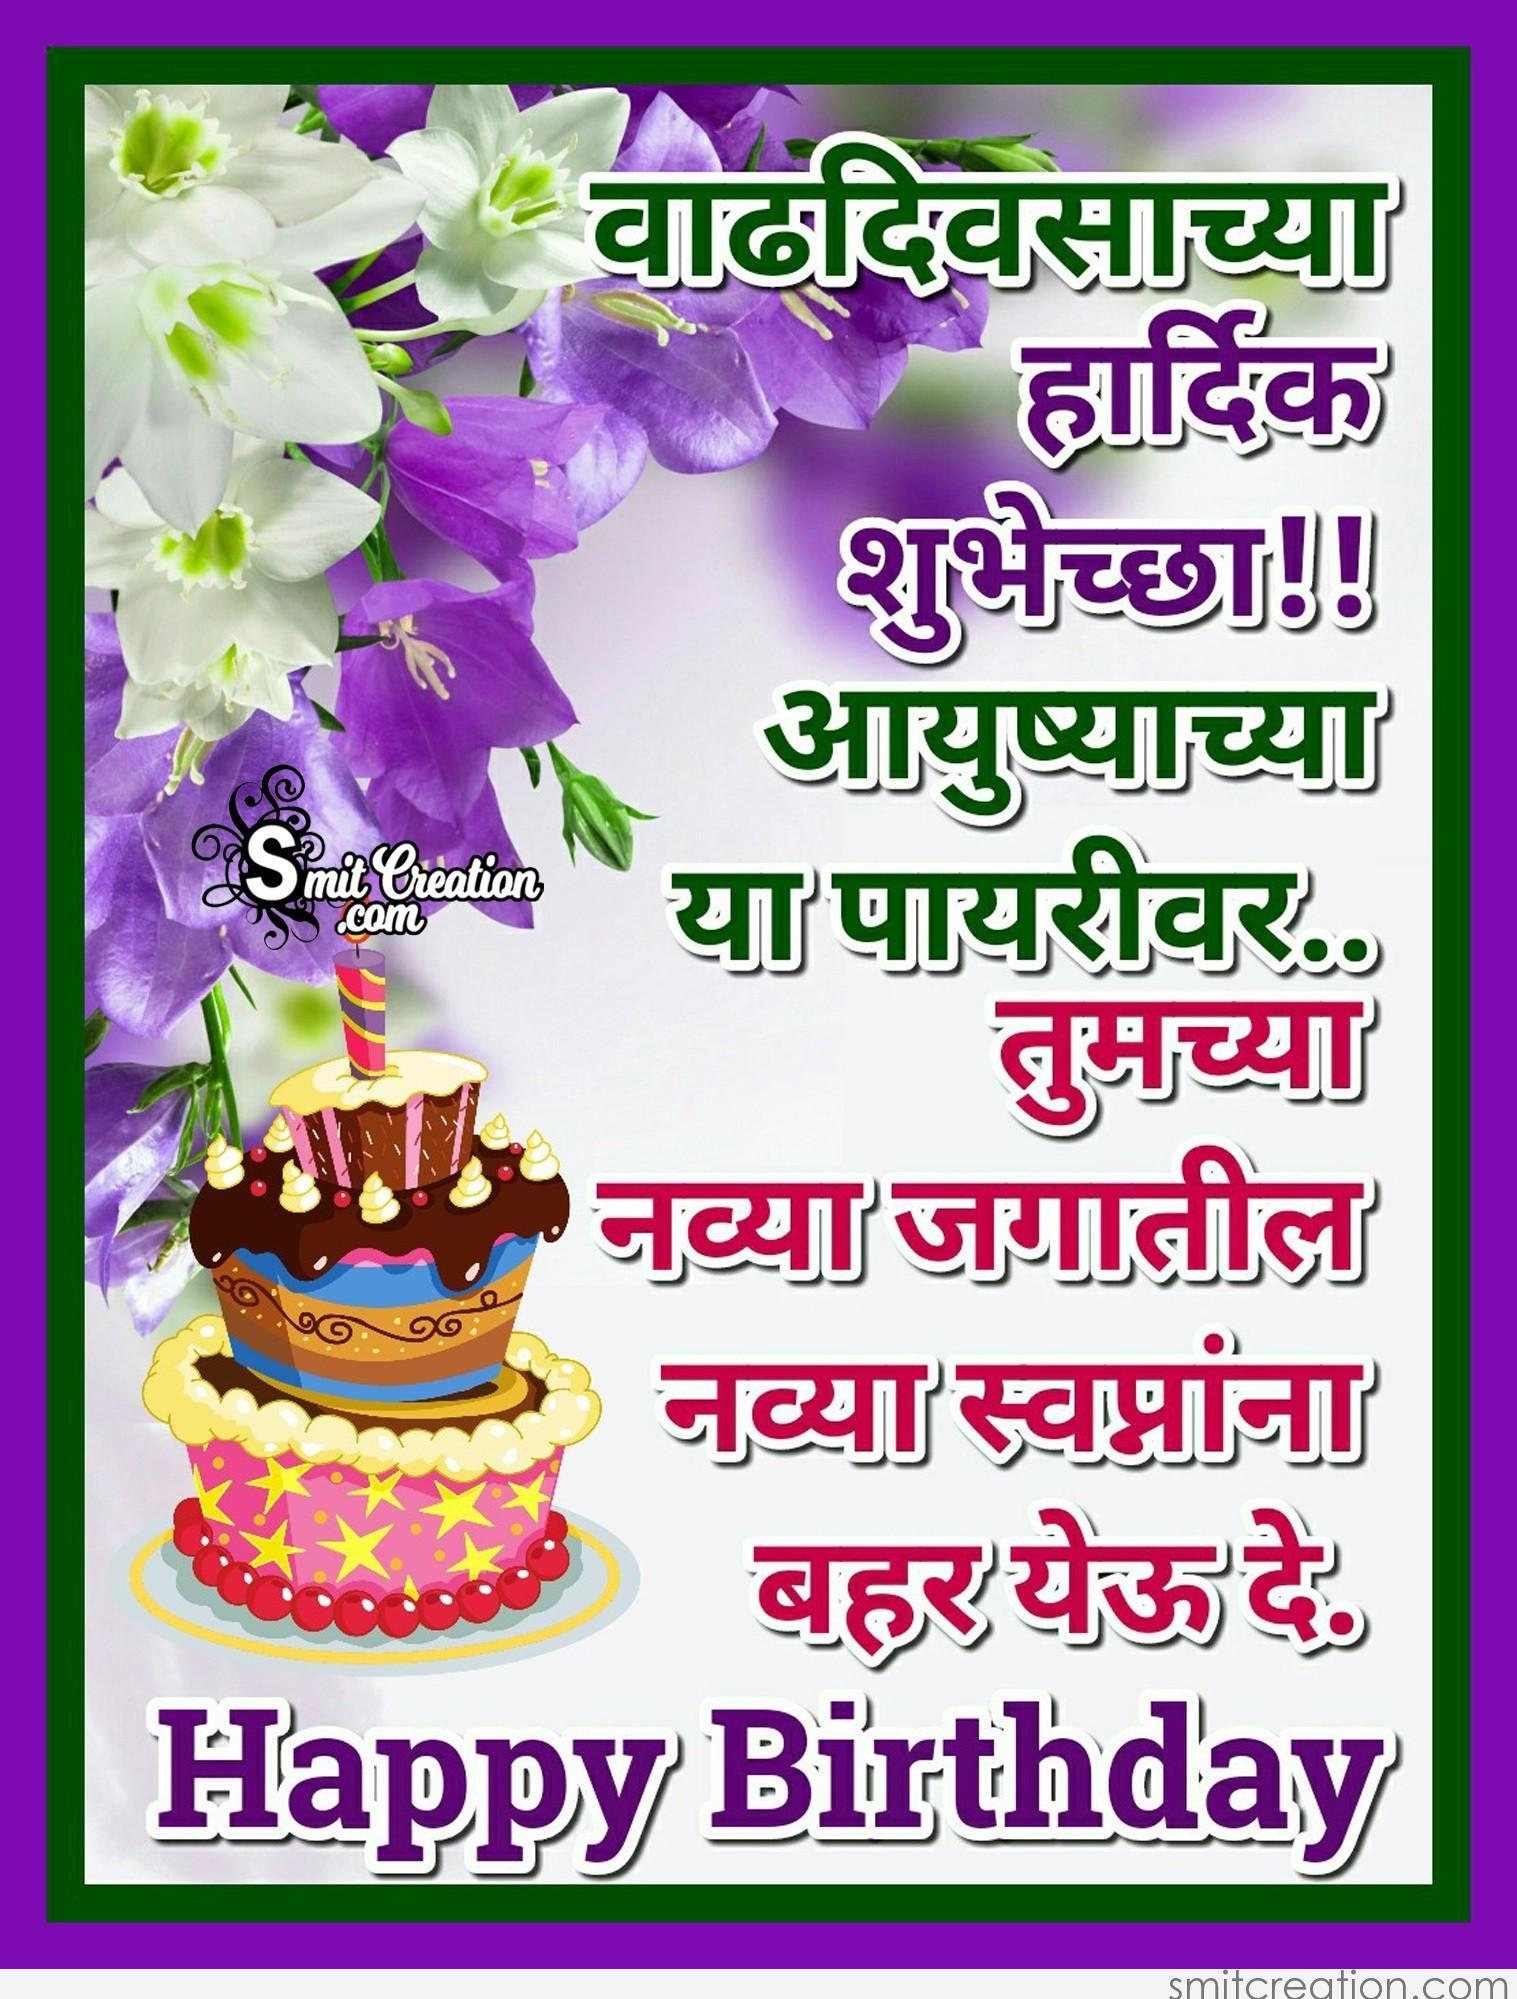 Birthday Wishes For Friends Quotes In Marathi: Birthday Marathi Wishes Pictures And Graphics